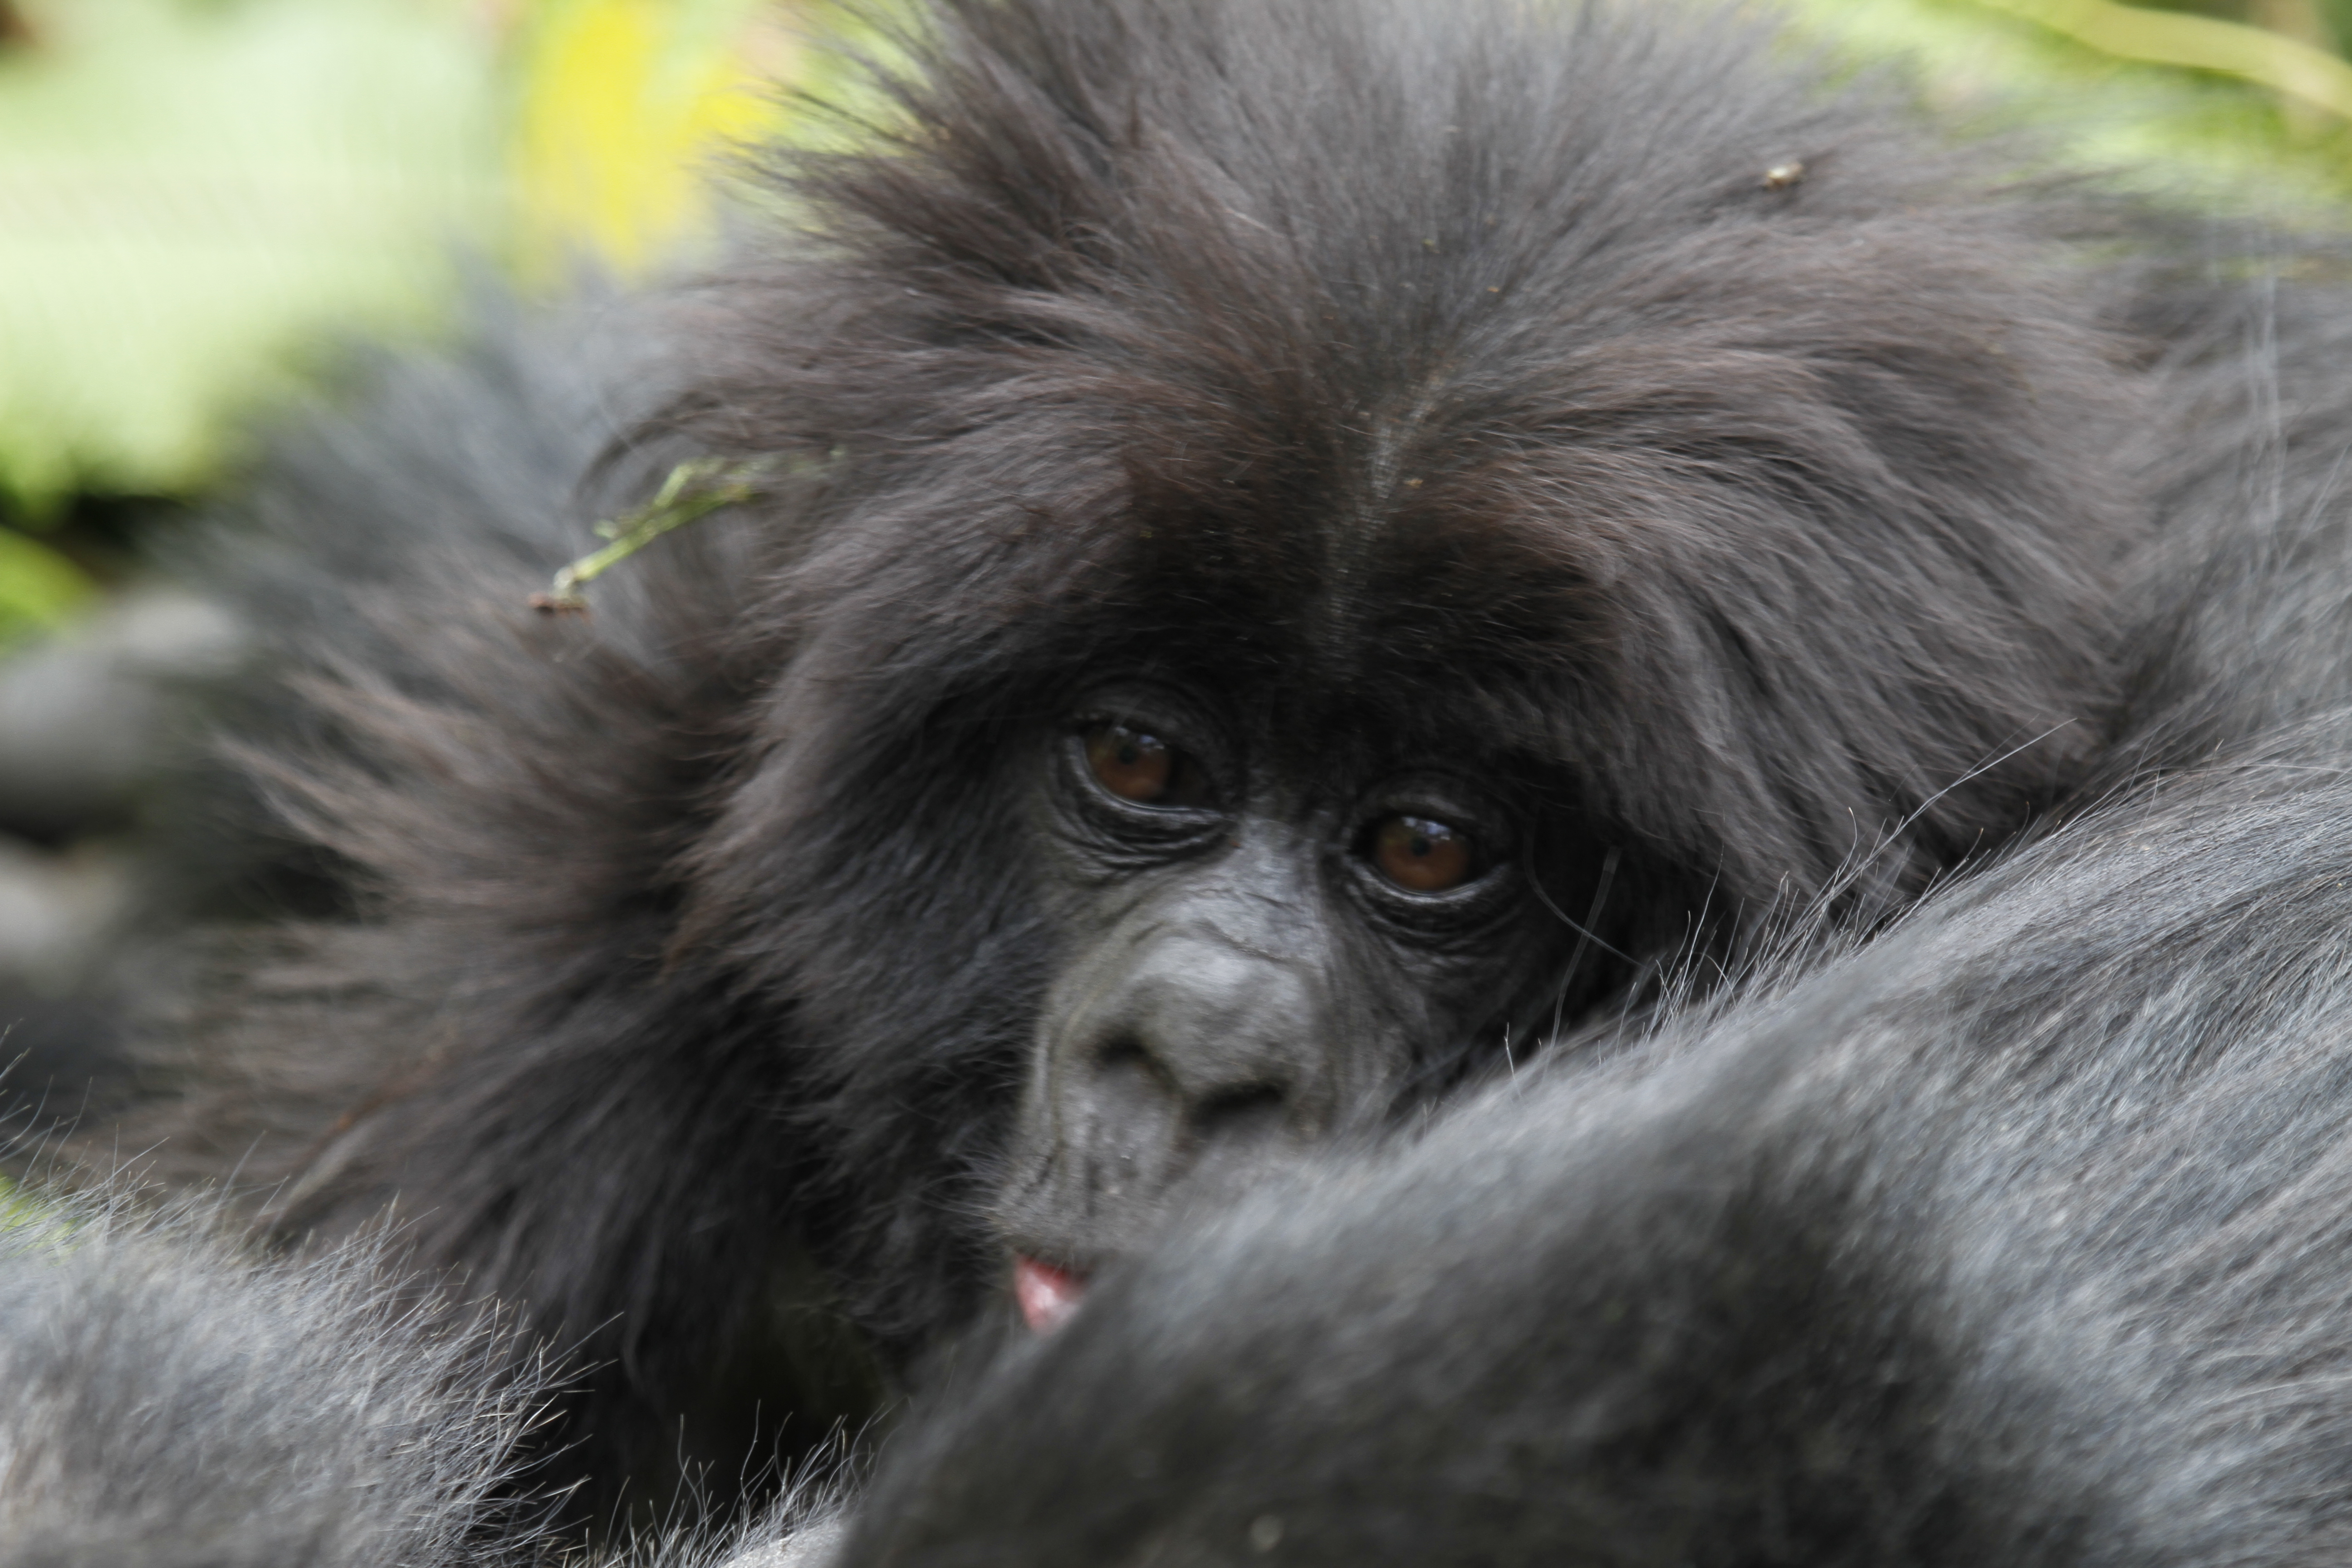 Mountain baby Gorilla- Gorilla Luxury safaris- 7 Days of Gorillas chimps and shoebill stork safari